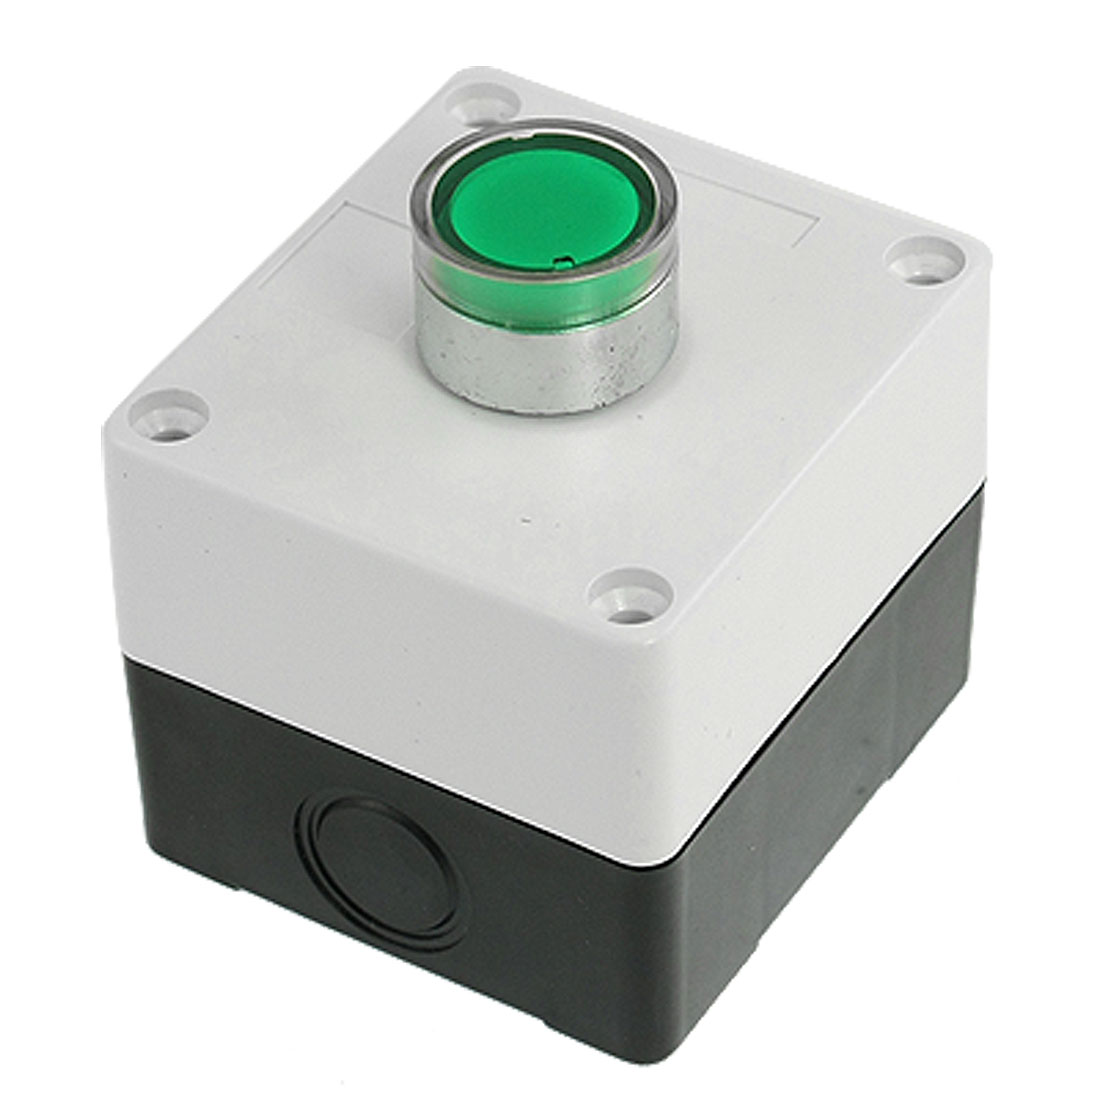 DC-24V-Green-Round-Cap-Signal-Illuminated-Push-Button-Switch-Switching